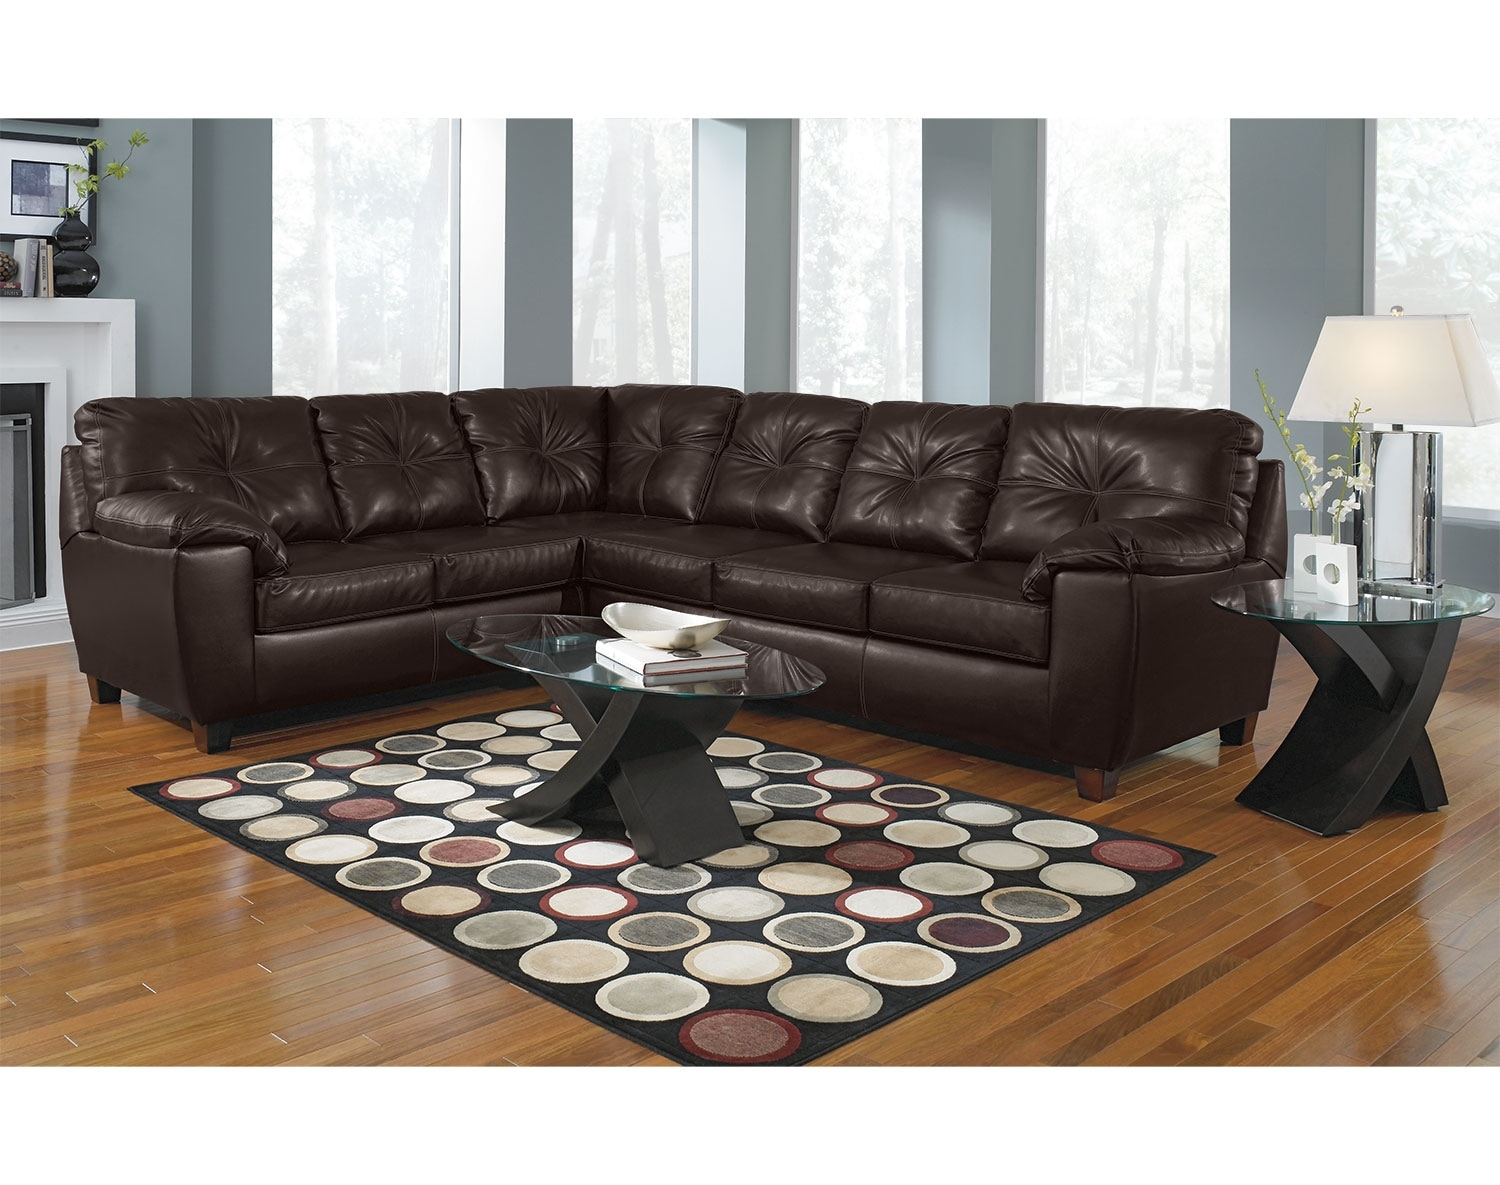 Leather Sofa Factory Outlet Engrossing Modern Sofas Los Angeles Tags Sofa Thesofa: home outlet furniture in okc